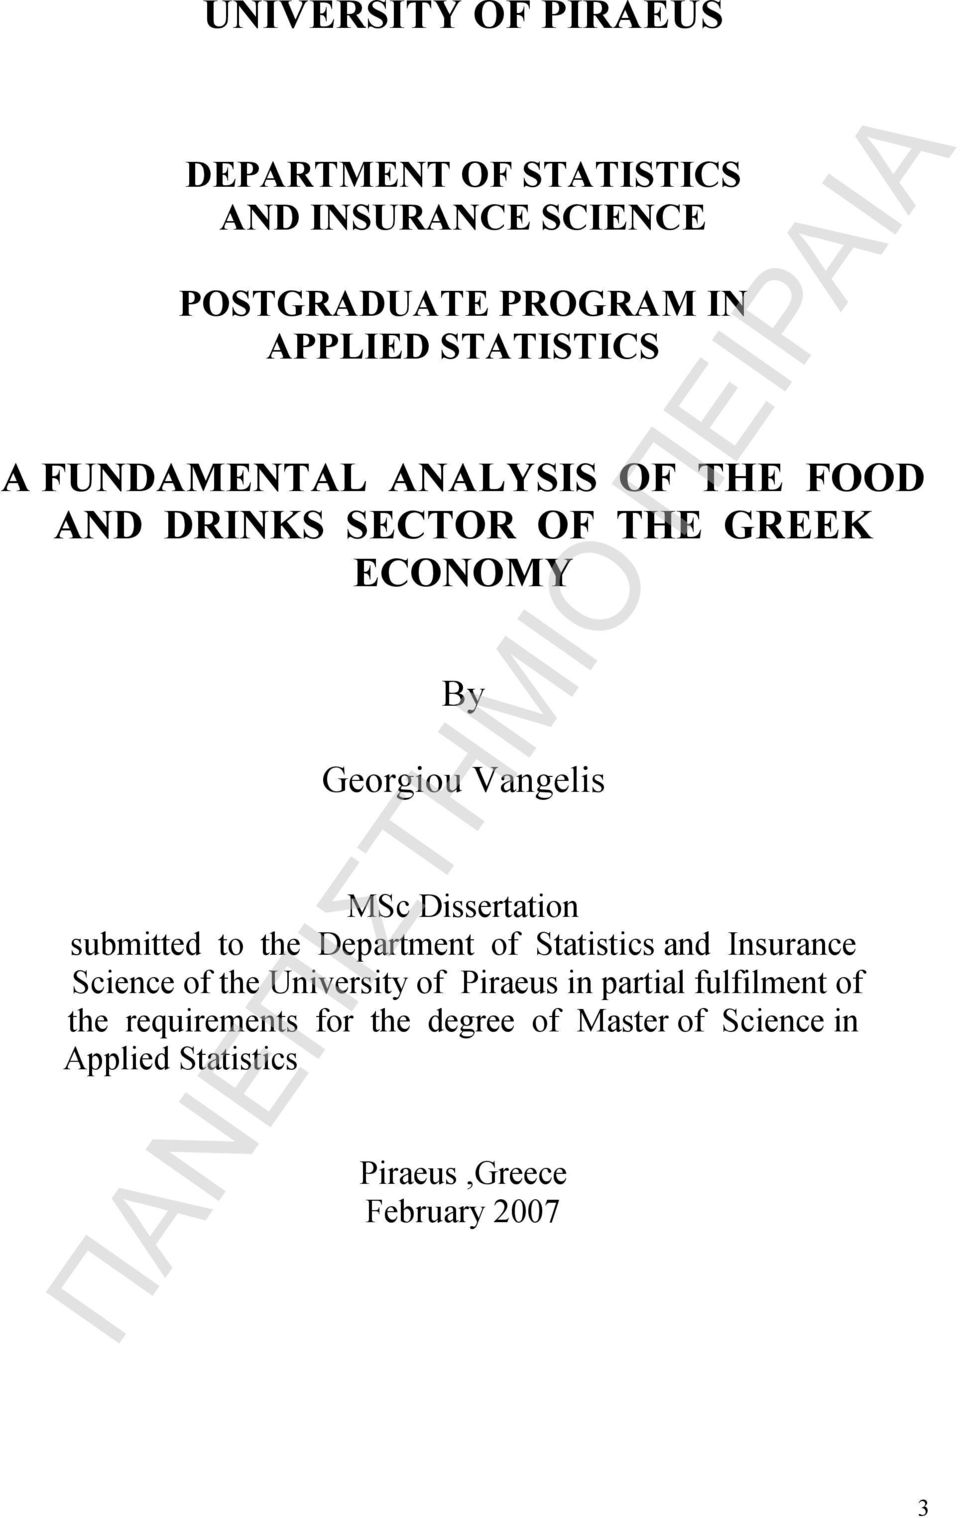 submitted to the Department of Statistics and Insurance Science of the University of Piraeus in partial